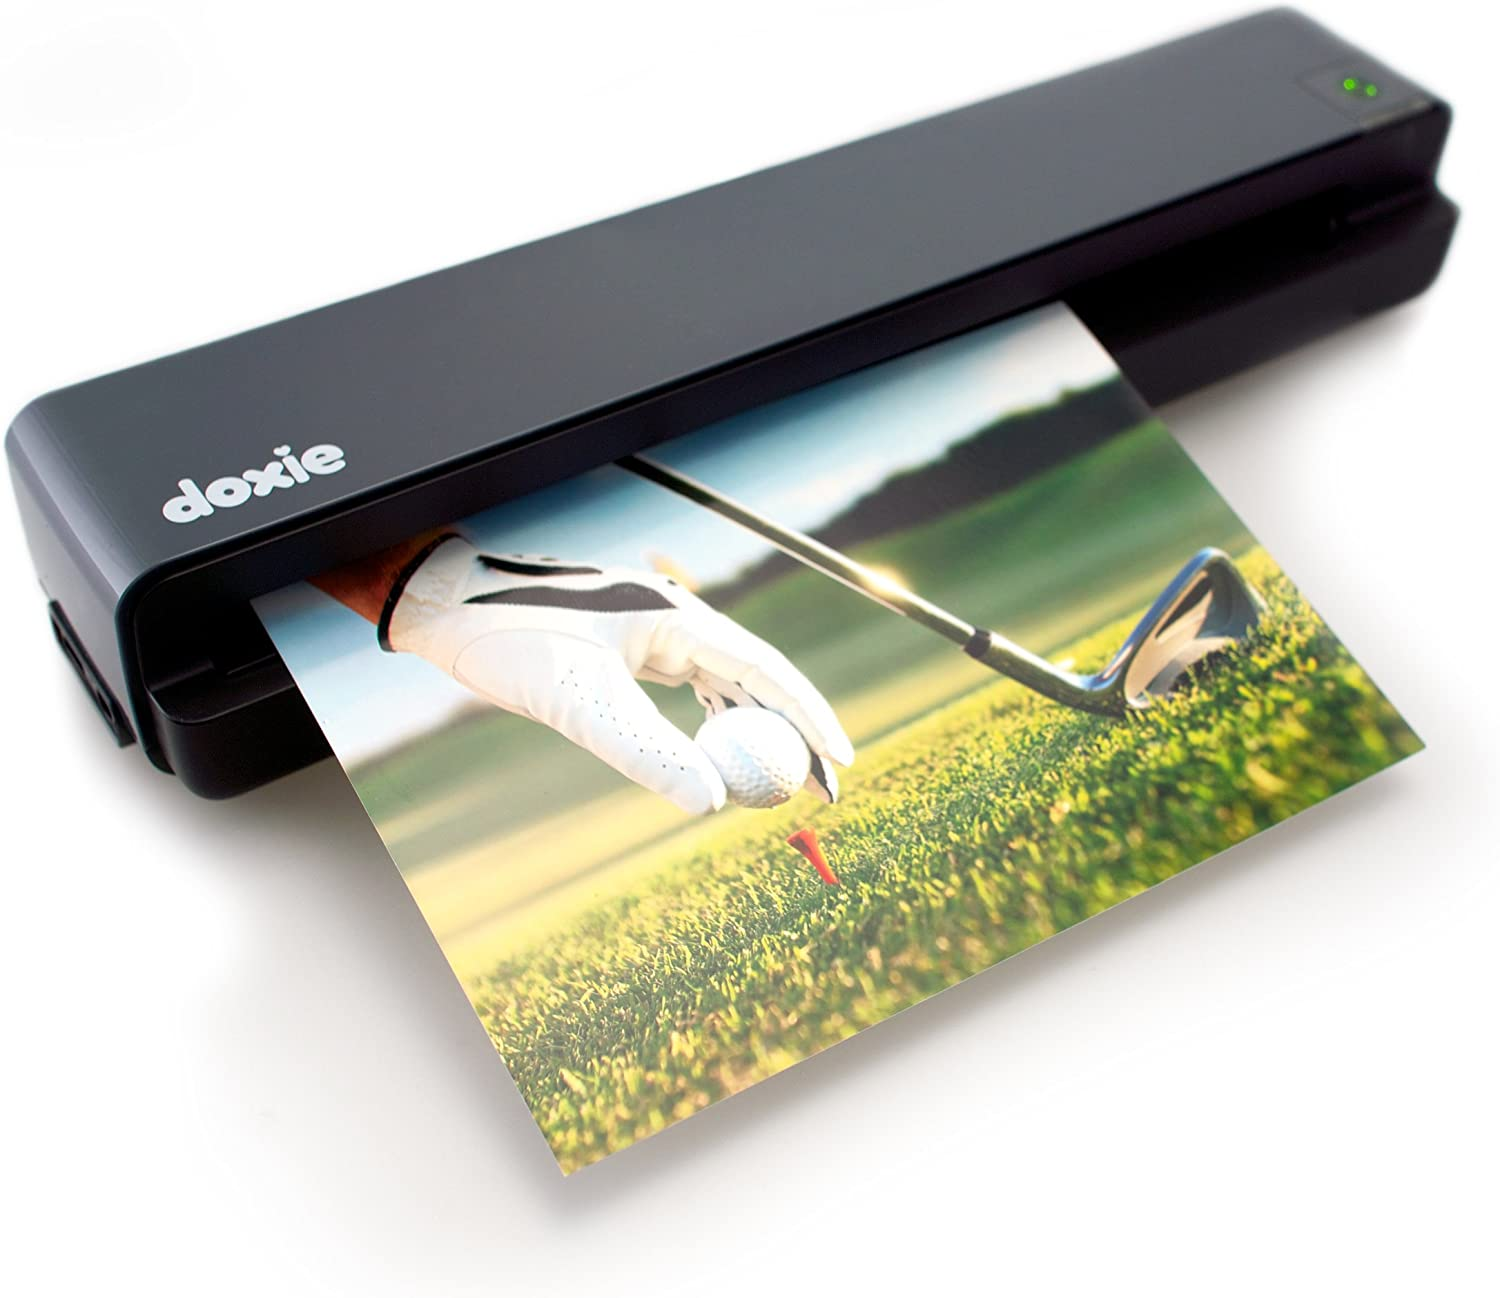 Doxie One Standalone Scanner